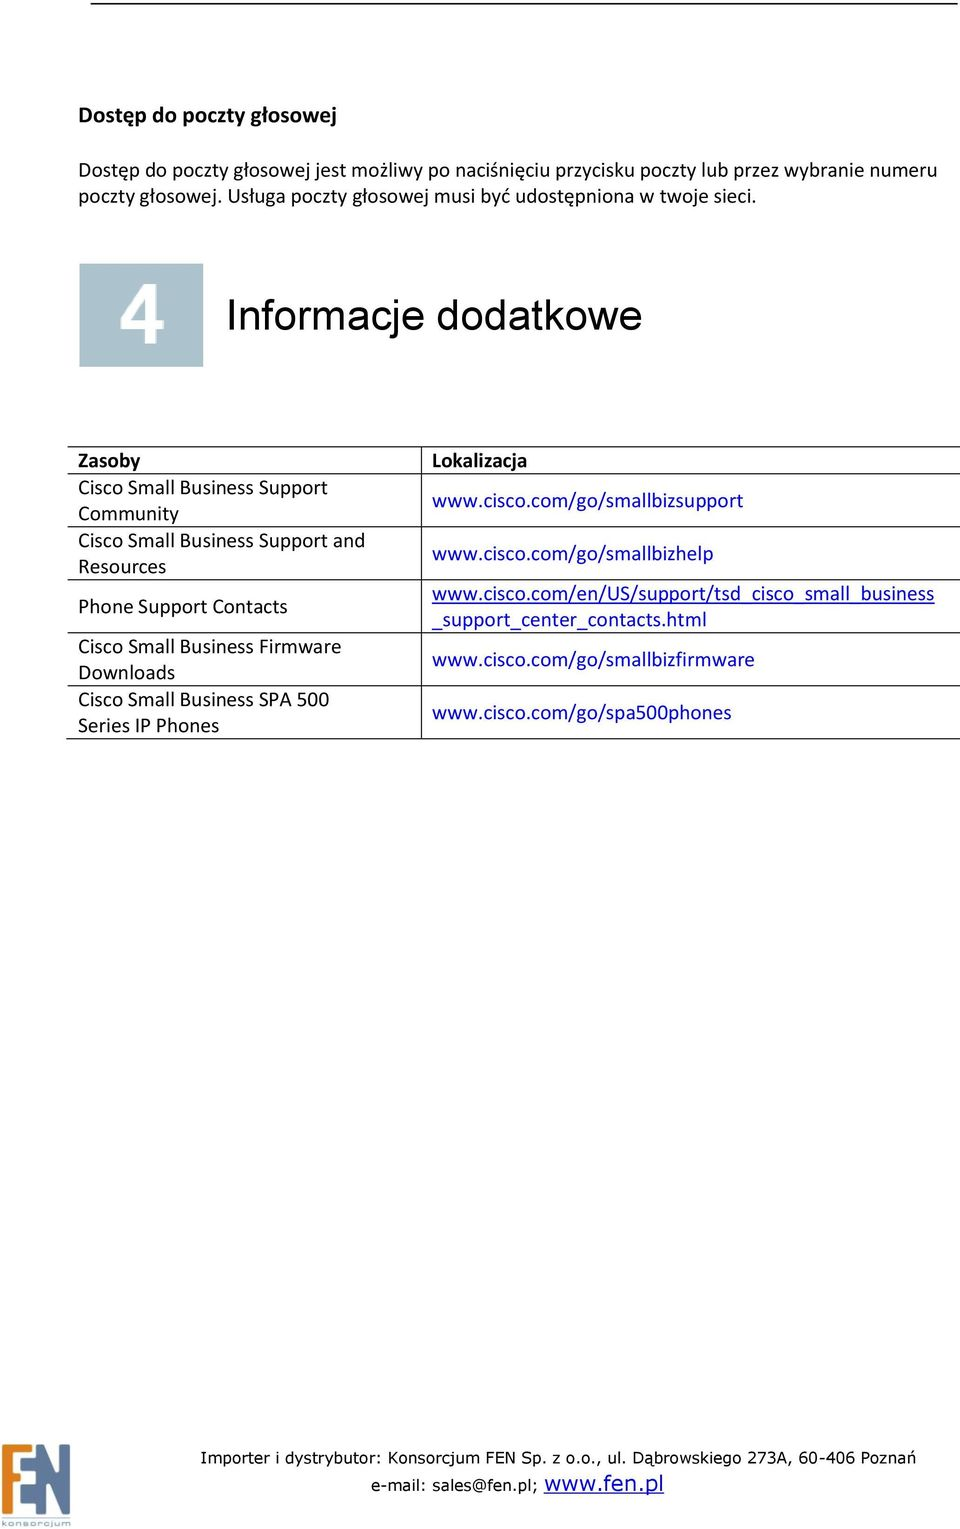 Informacje dodatkowe Zasoby Cisco Small Business Support Community Cisco Small Business Support and Resources Phone Support Contacts Cisco Small Business